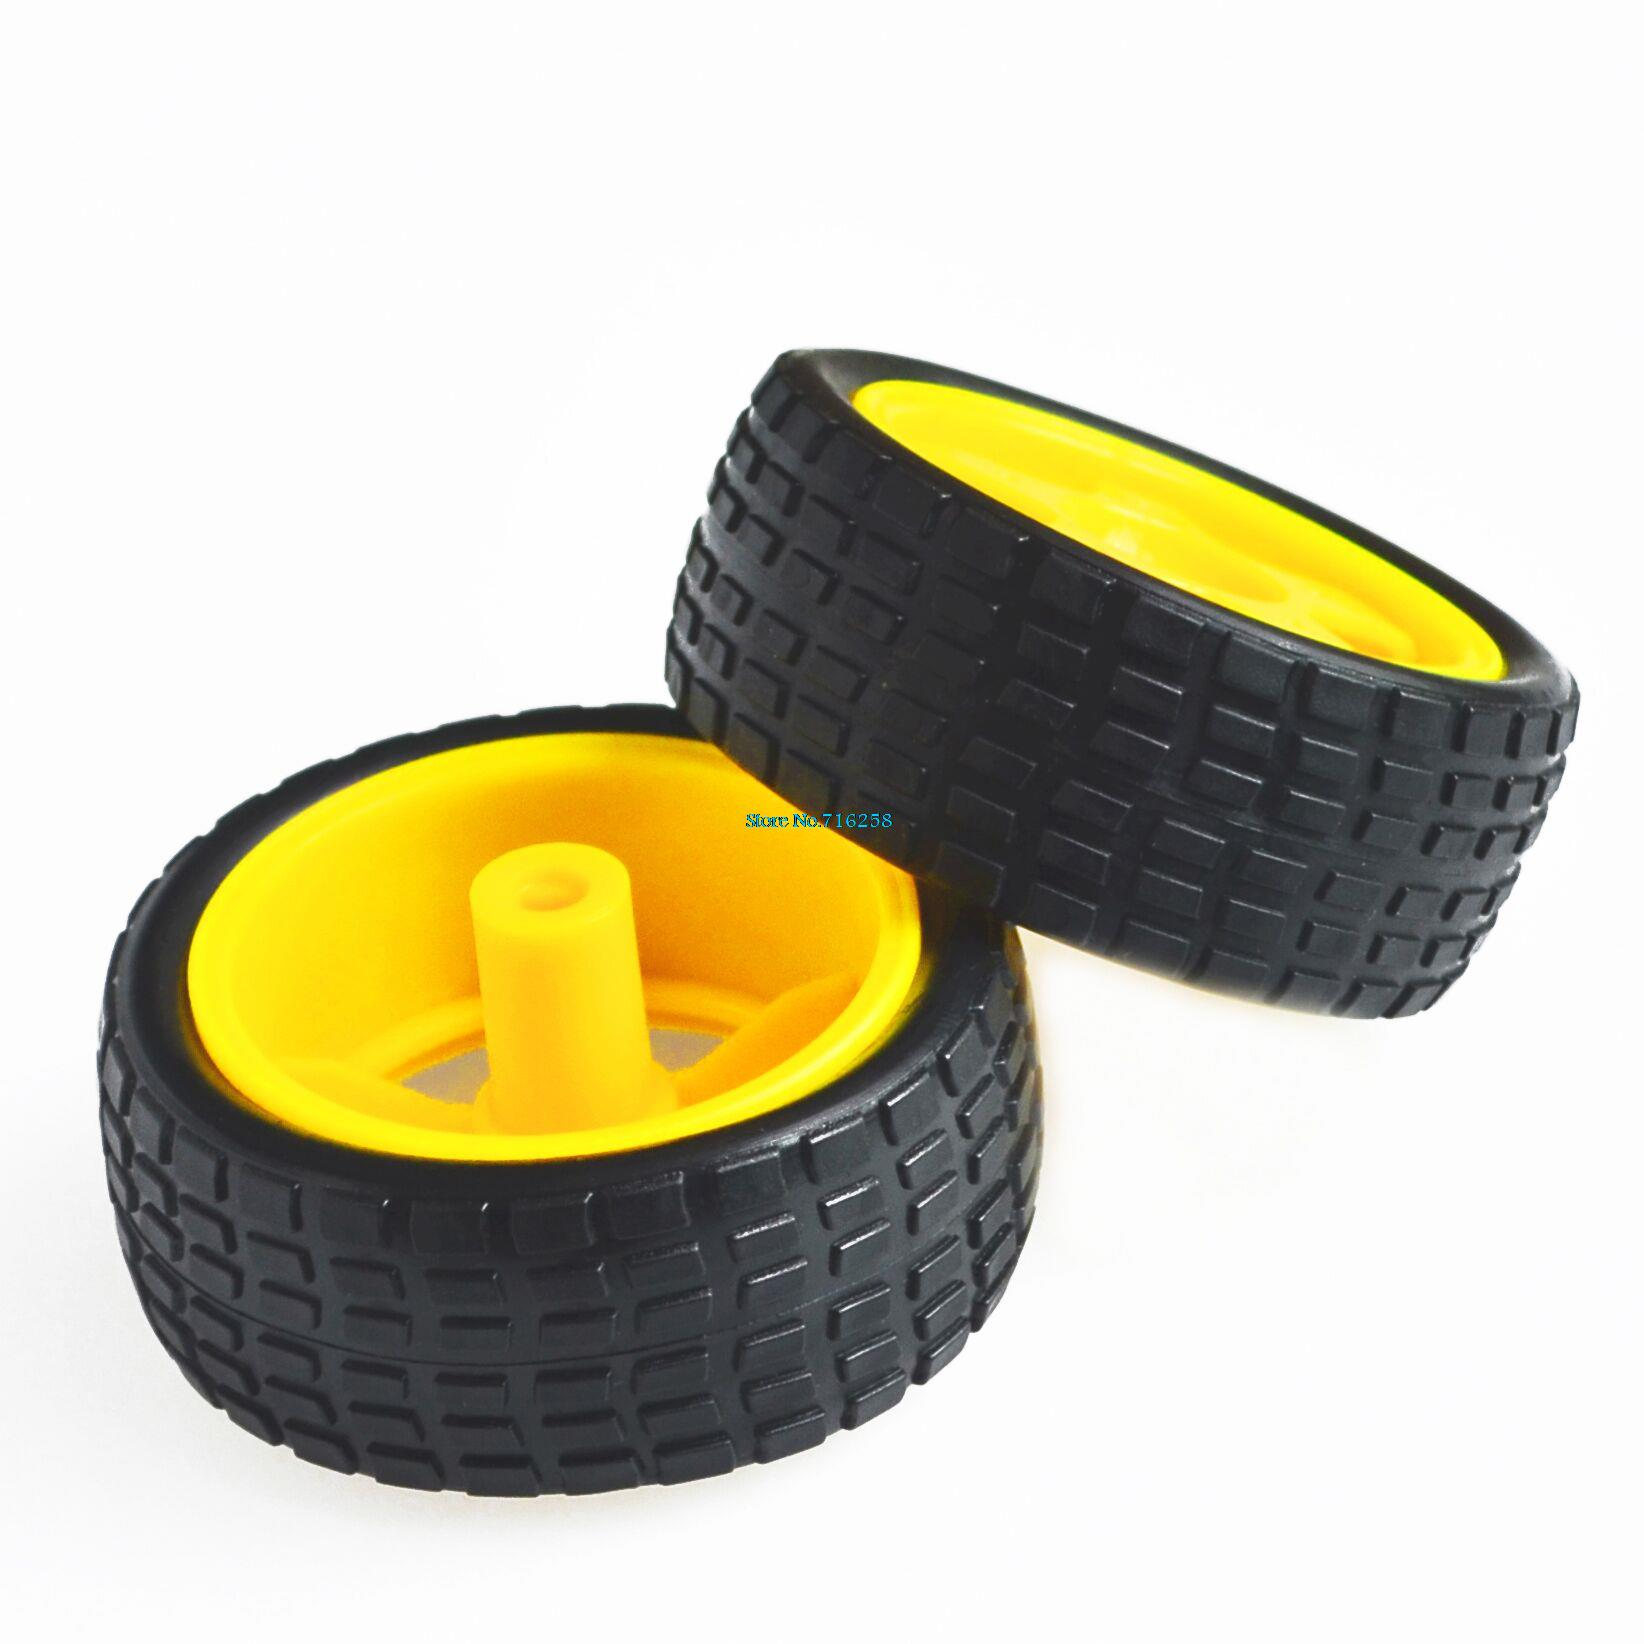 Supporting Wheels Smart Car Chassis,Tire, Robot Car Wheels